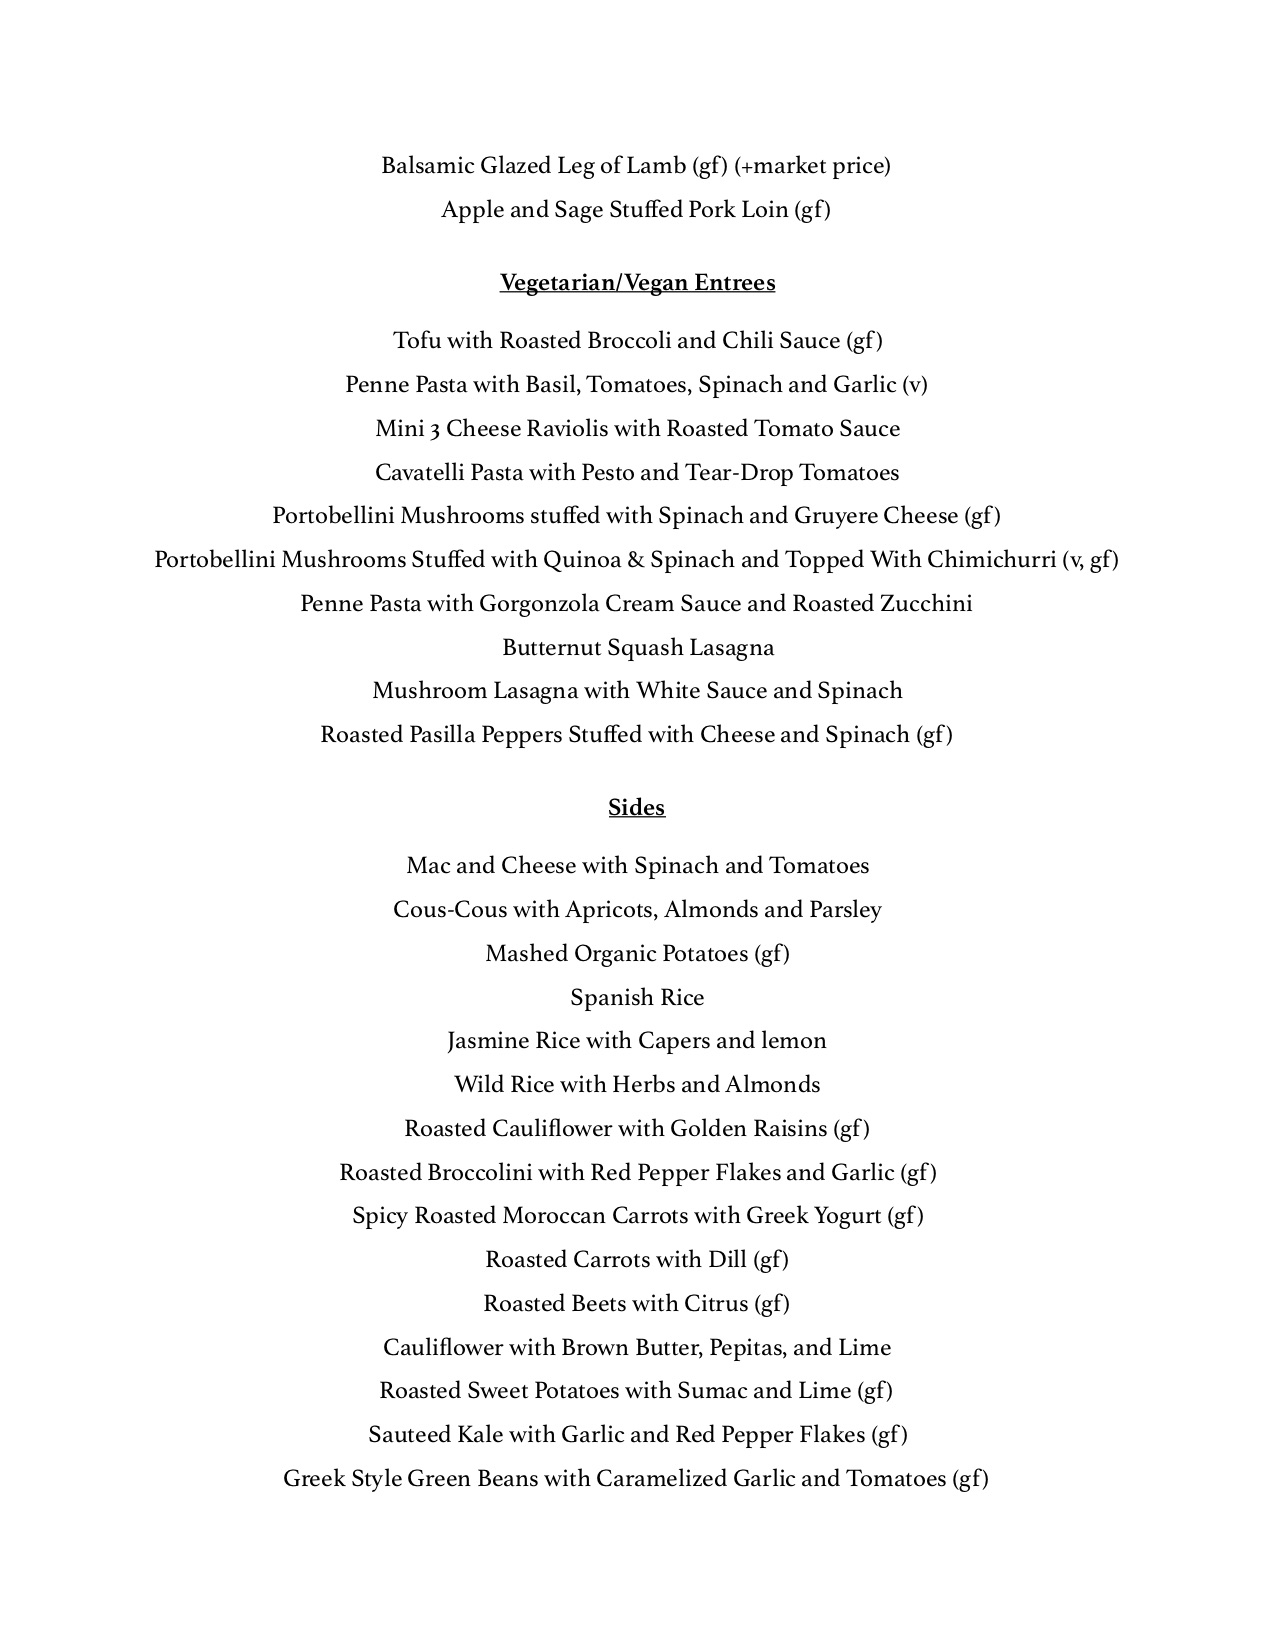 Spotted Hen Full Service and Wedding Menu 6.jpg